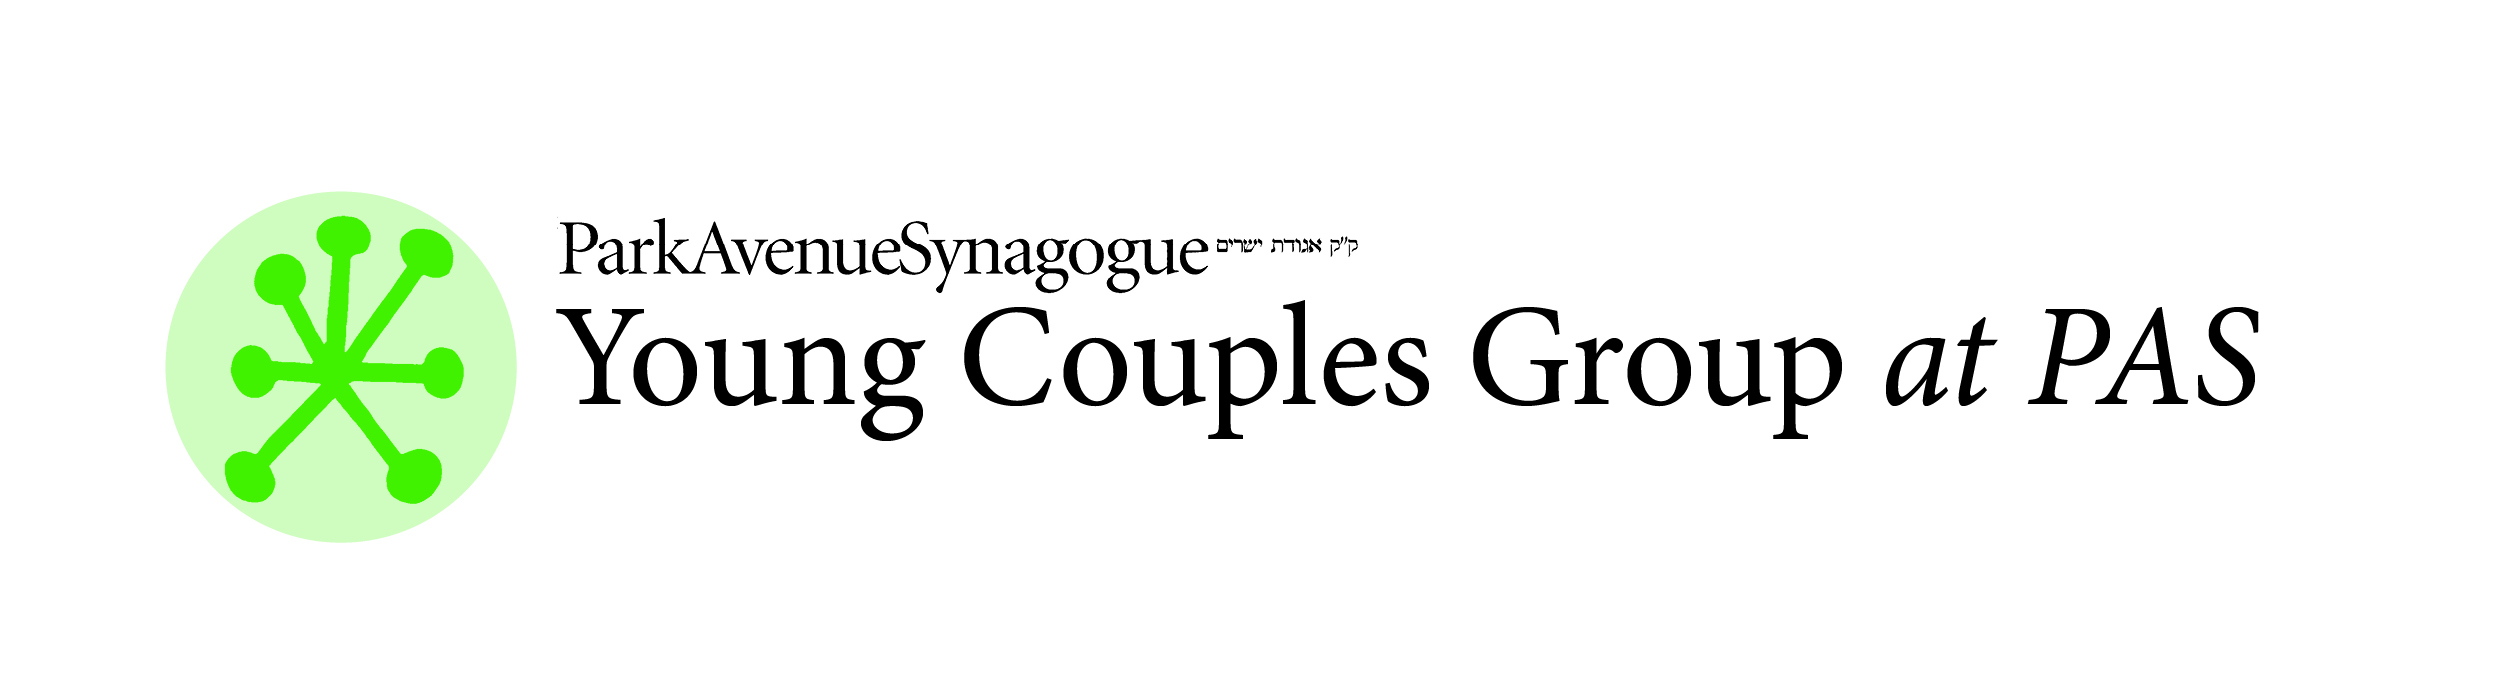 Young Couples Group at PAS